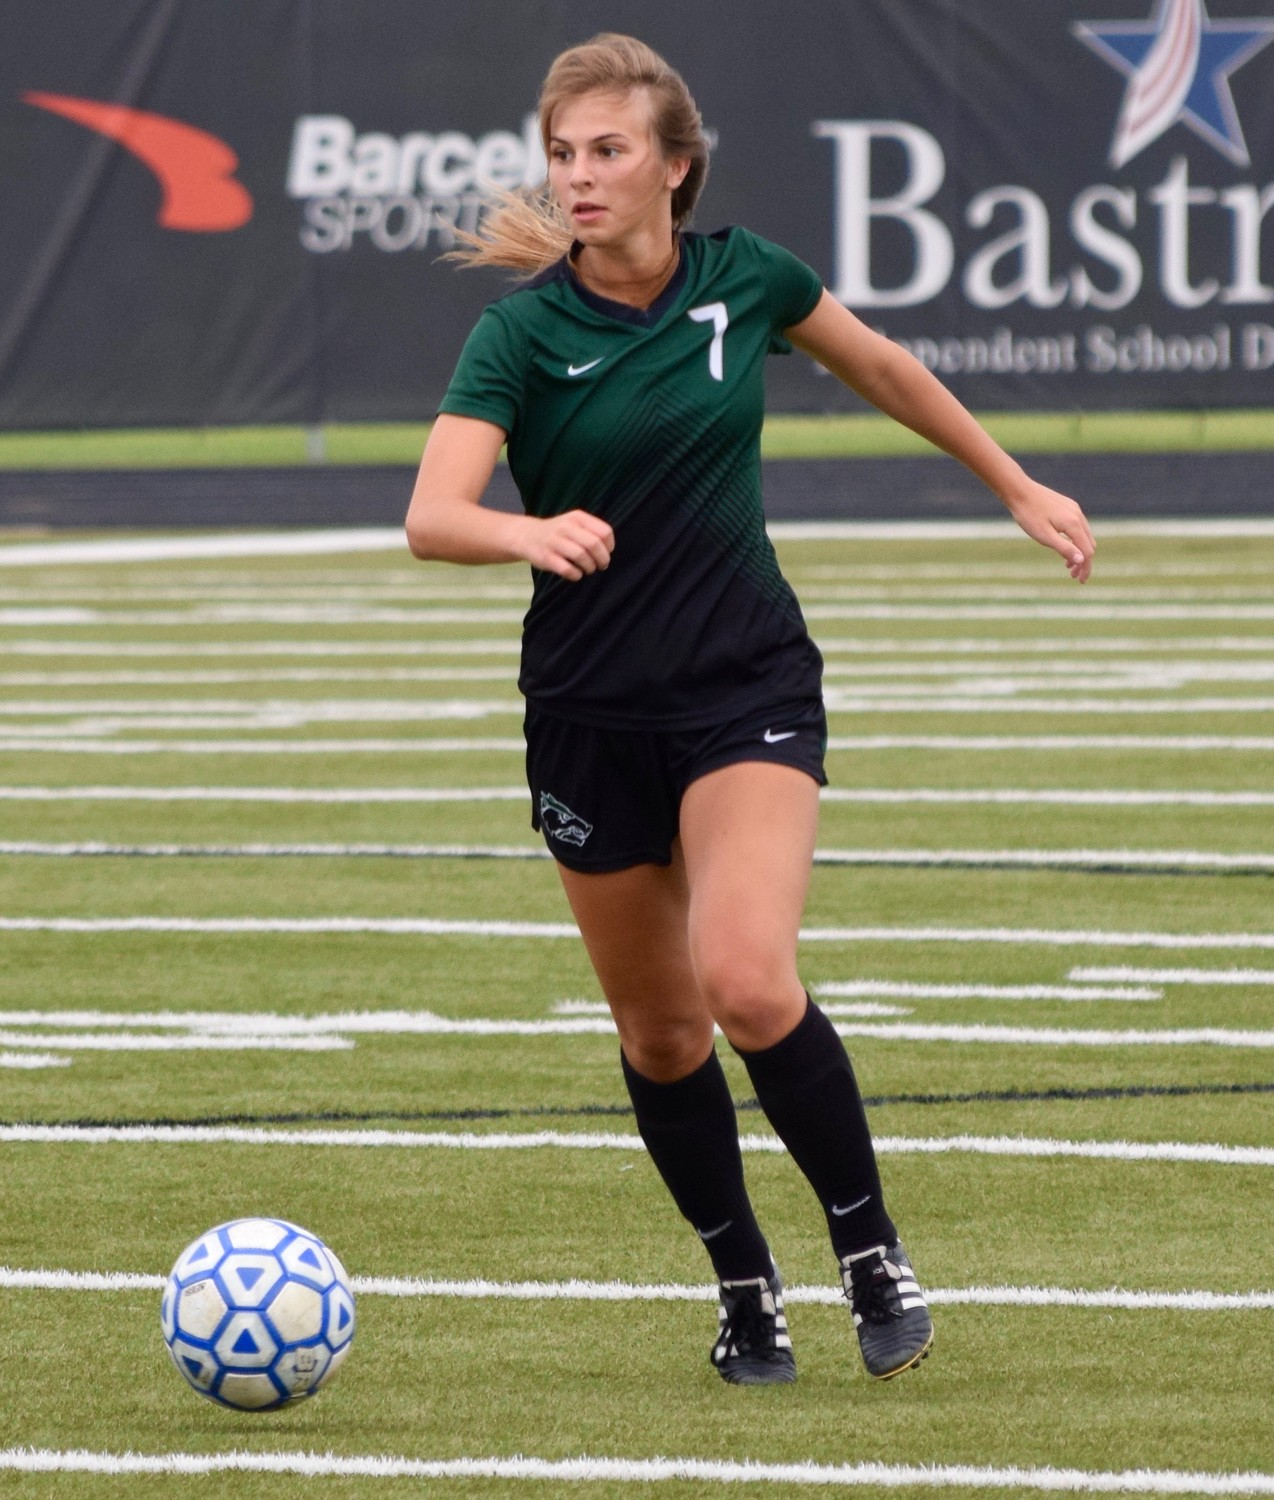 Jewell Resseguie scored a goal and Cedar Park beat Tomball Memorial 1-0 in Bastrop on Friday to advance to the regional semifinals.